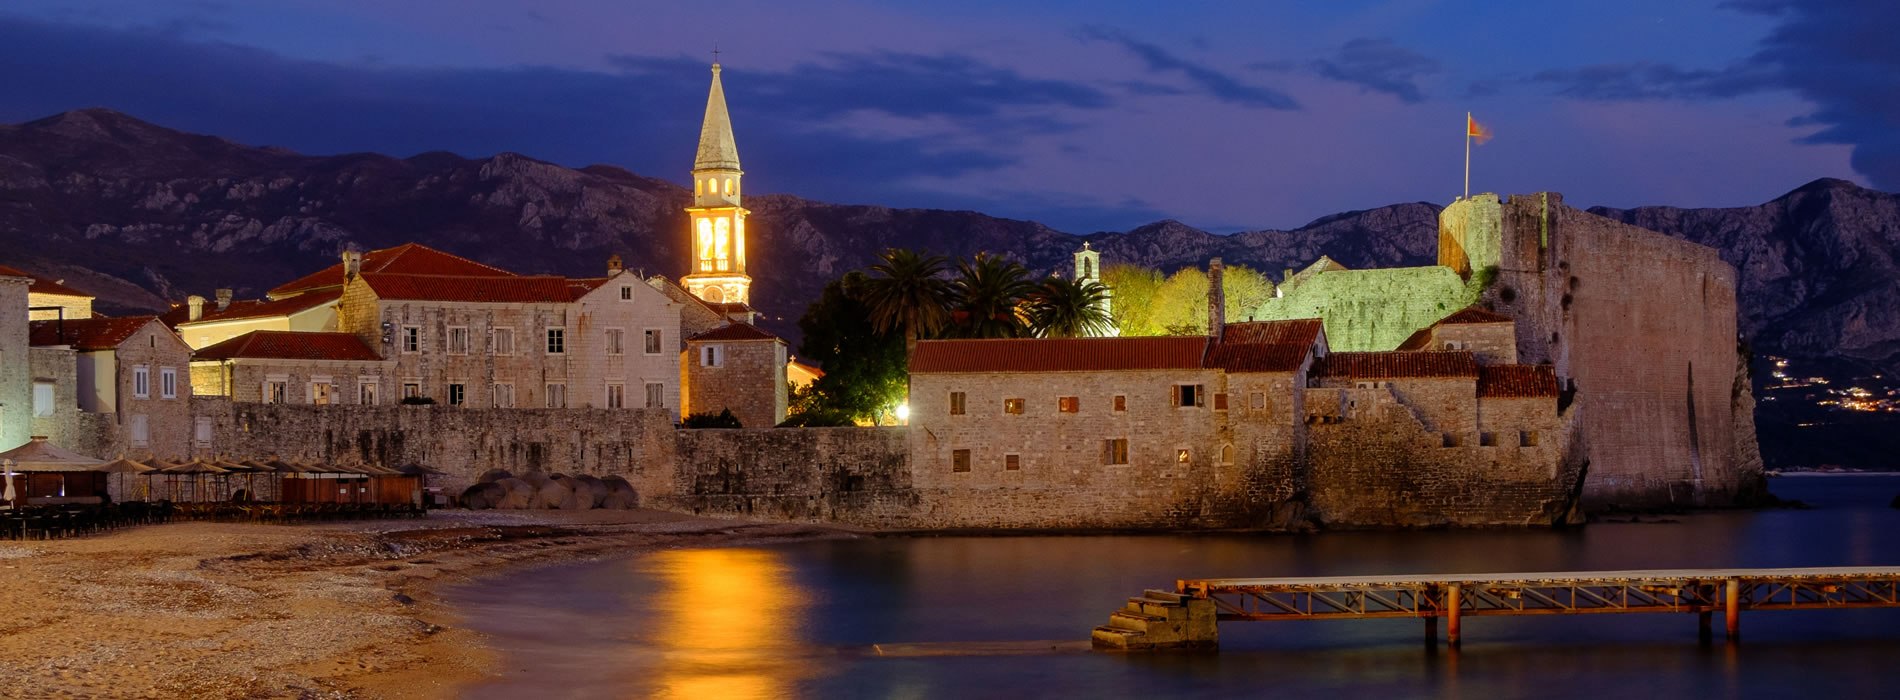 Budva_at_night.jpg